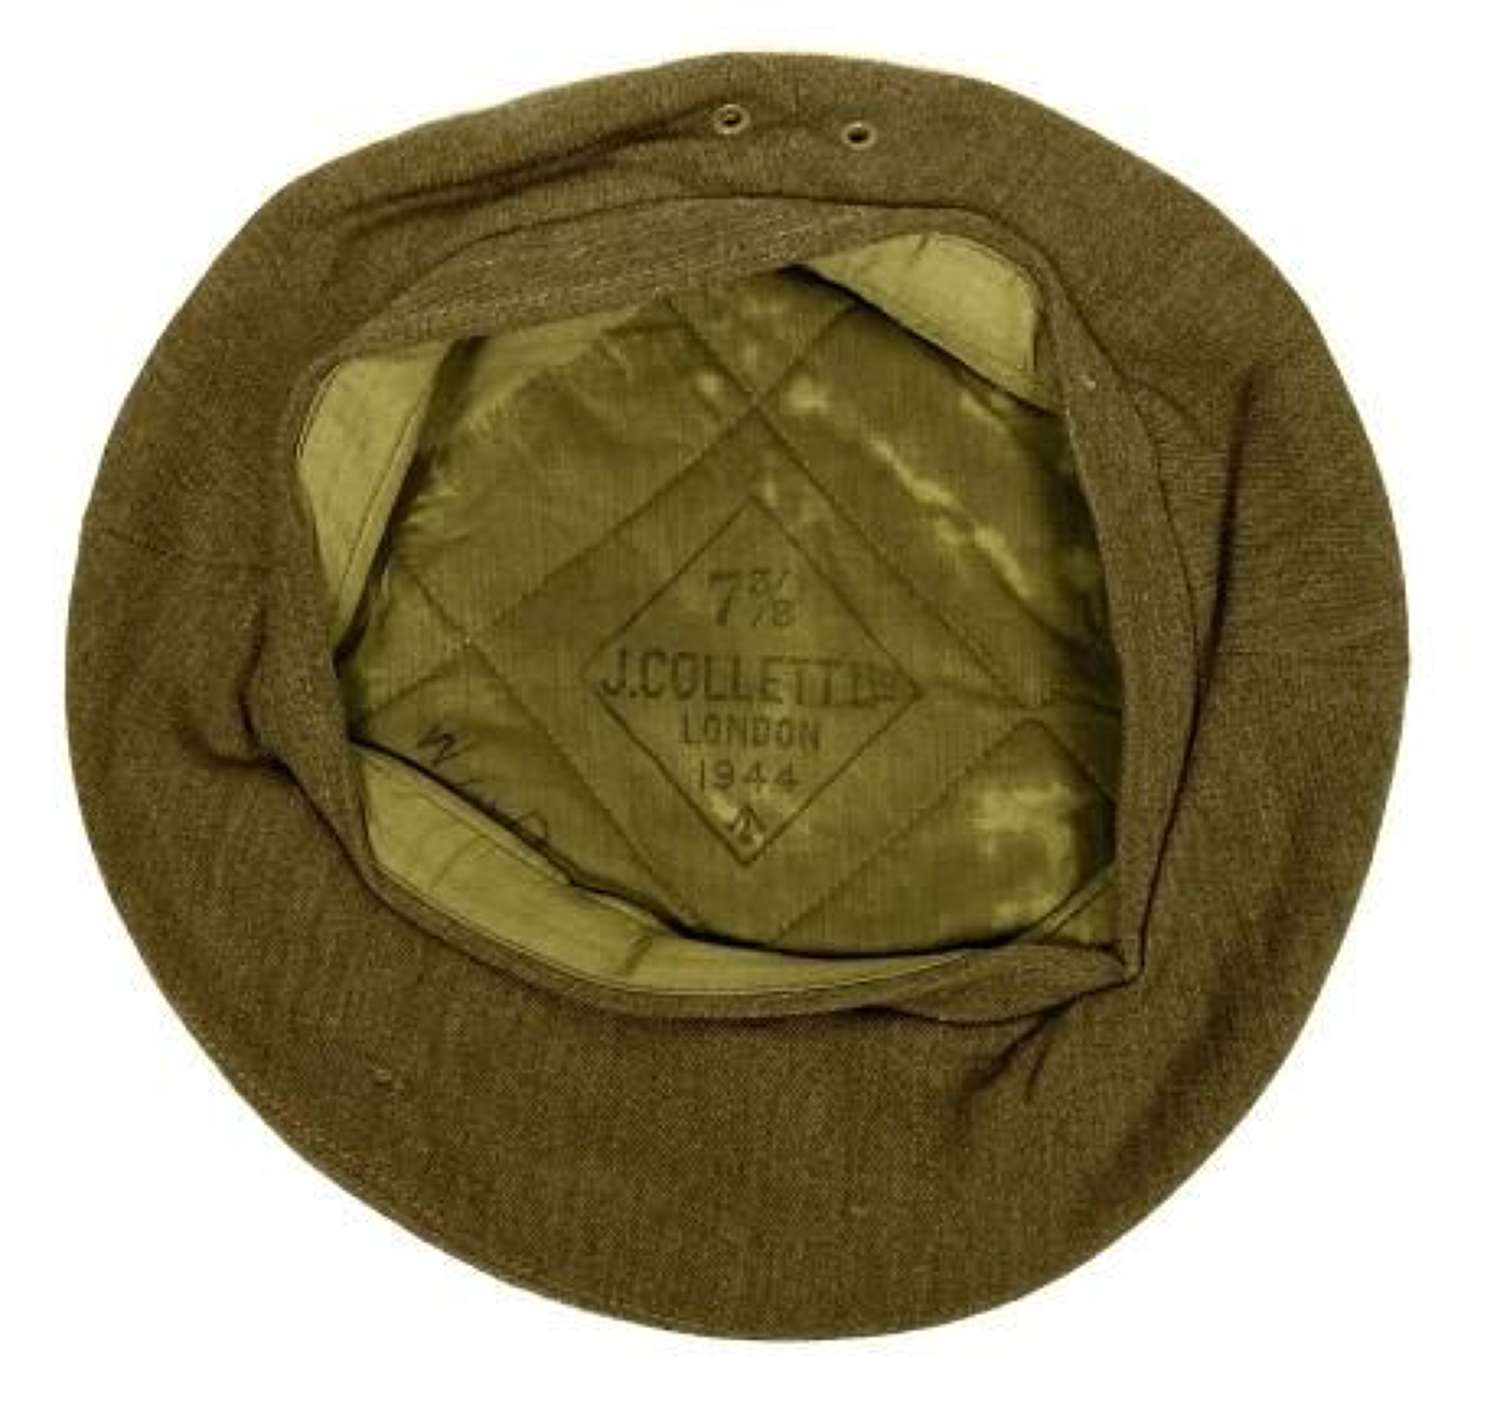 Original 1944 Dated British Army General Service Beret by 'J. Collett' - Szie 7 3/8